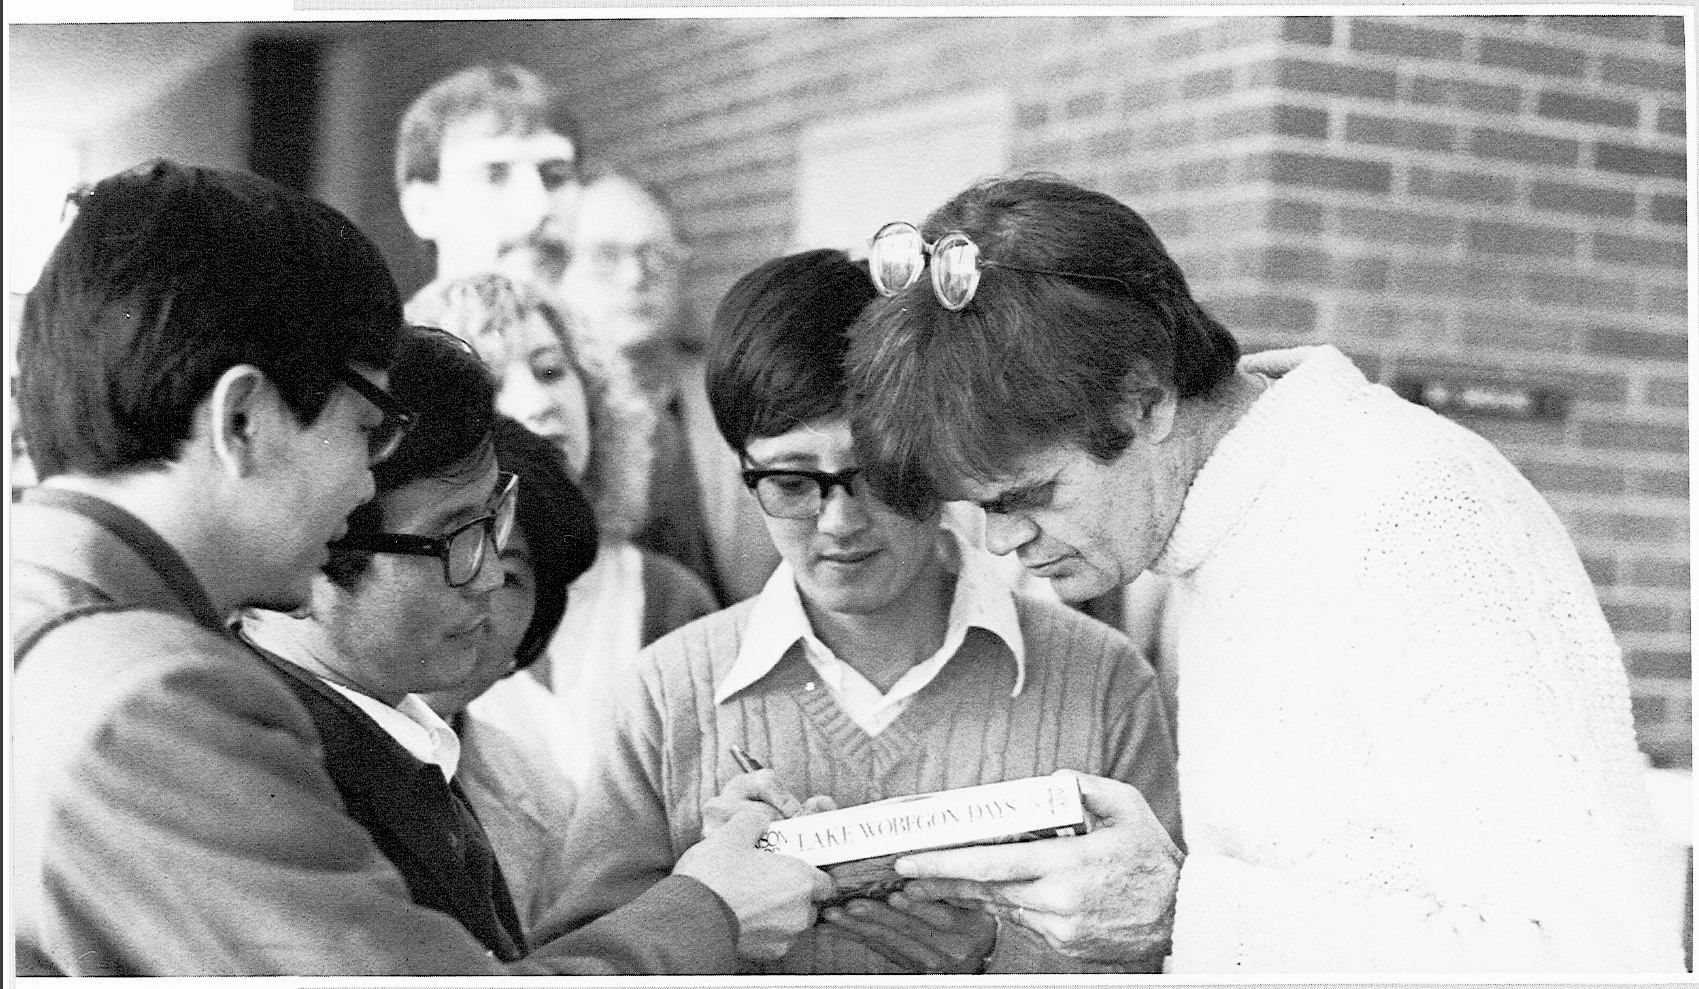 Garrison Keillor with students at Goshen College during a visit in 1985